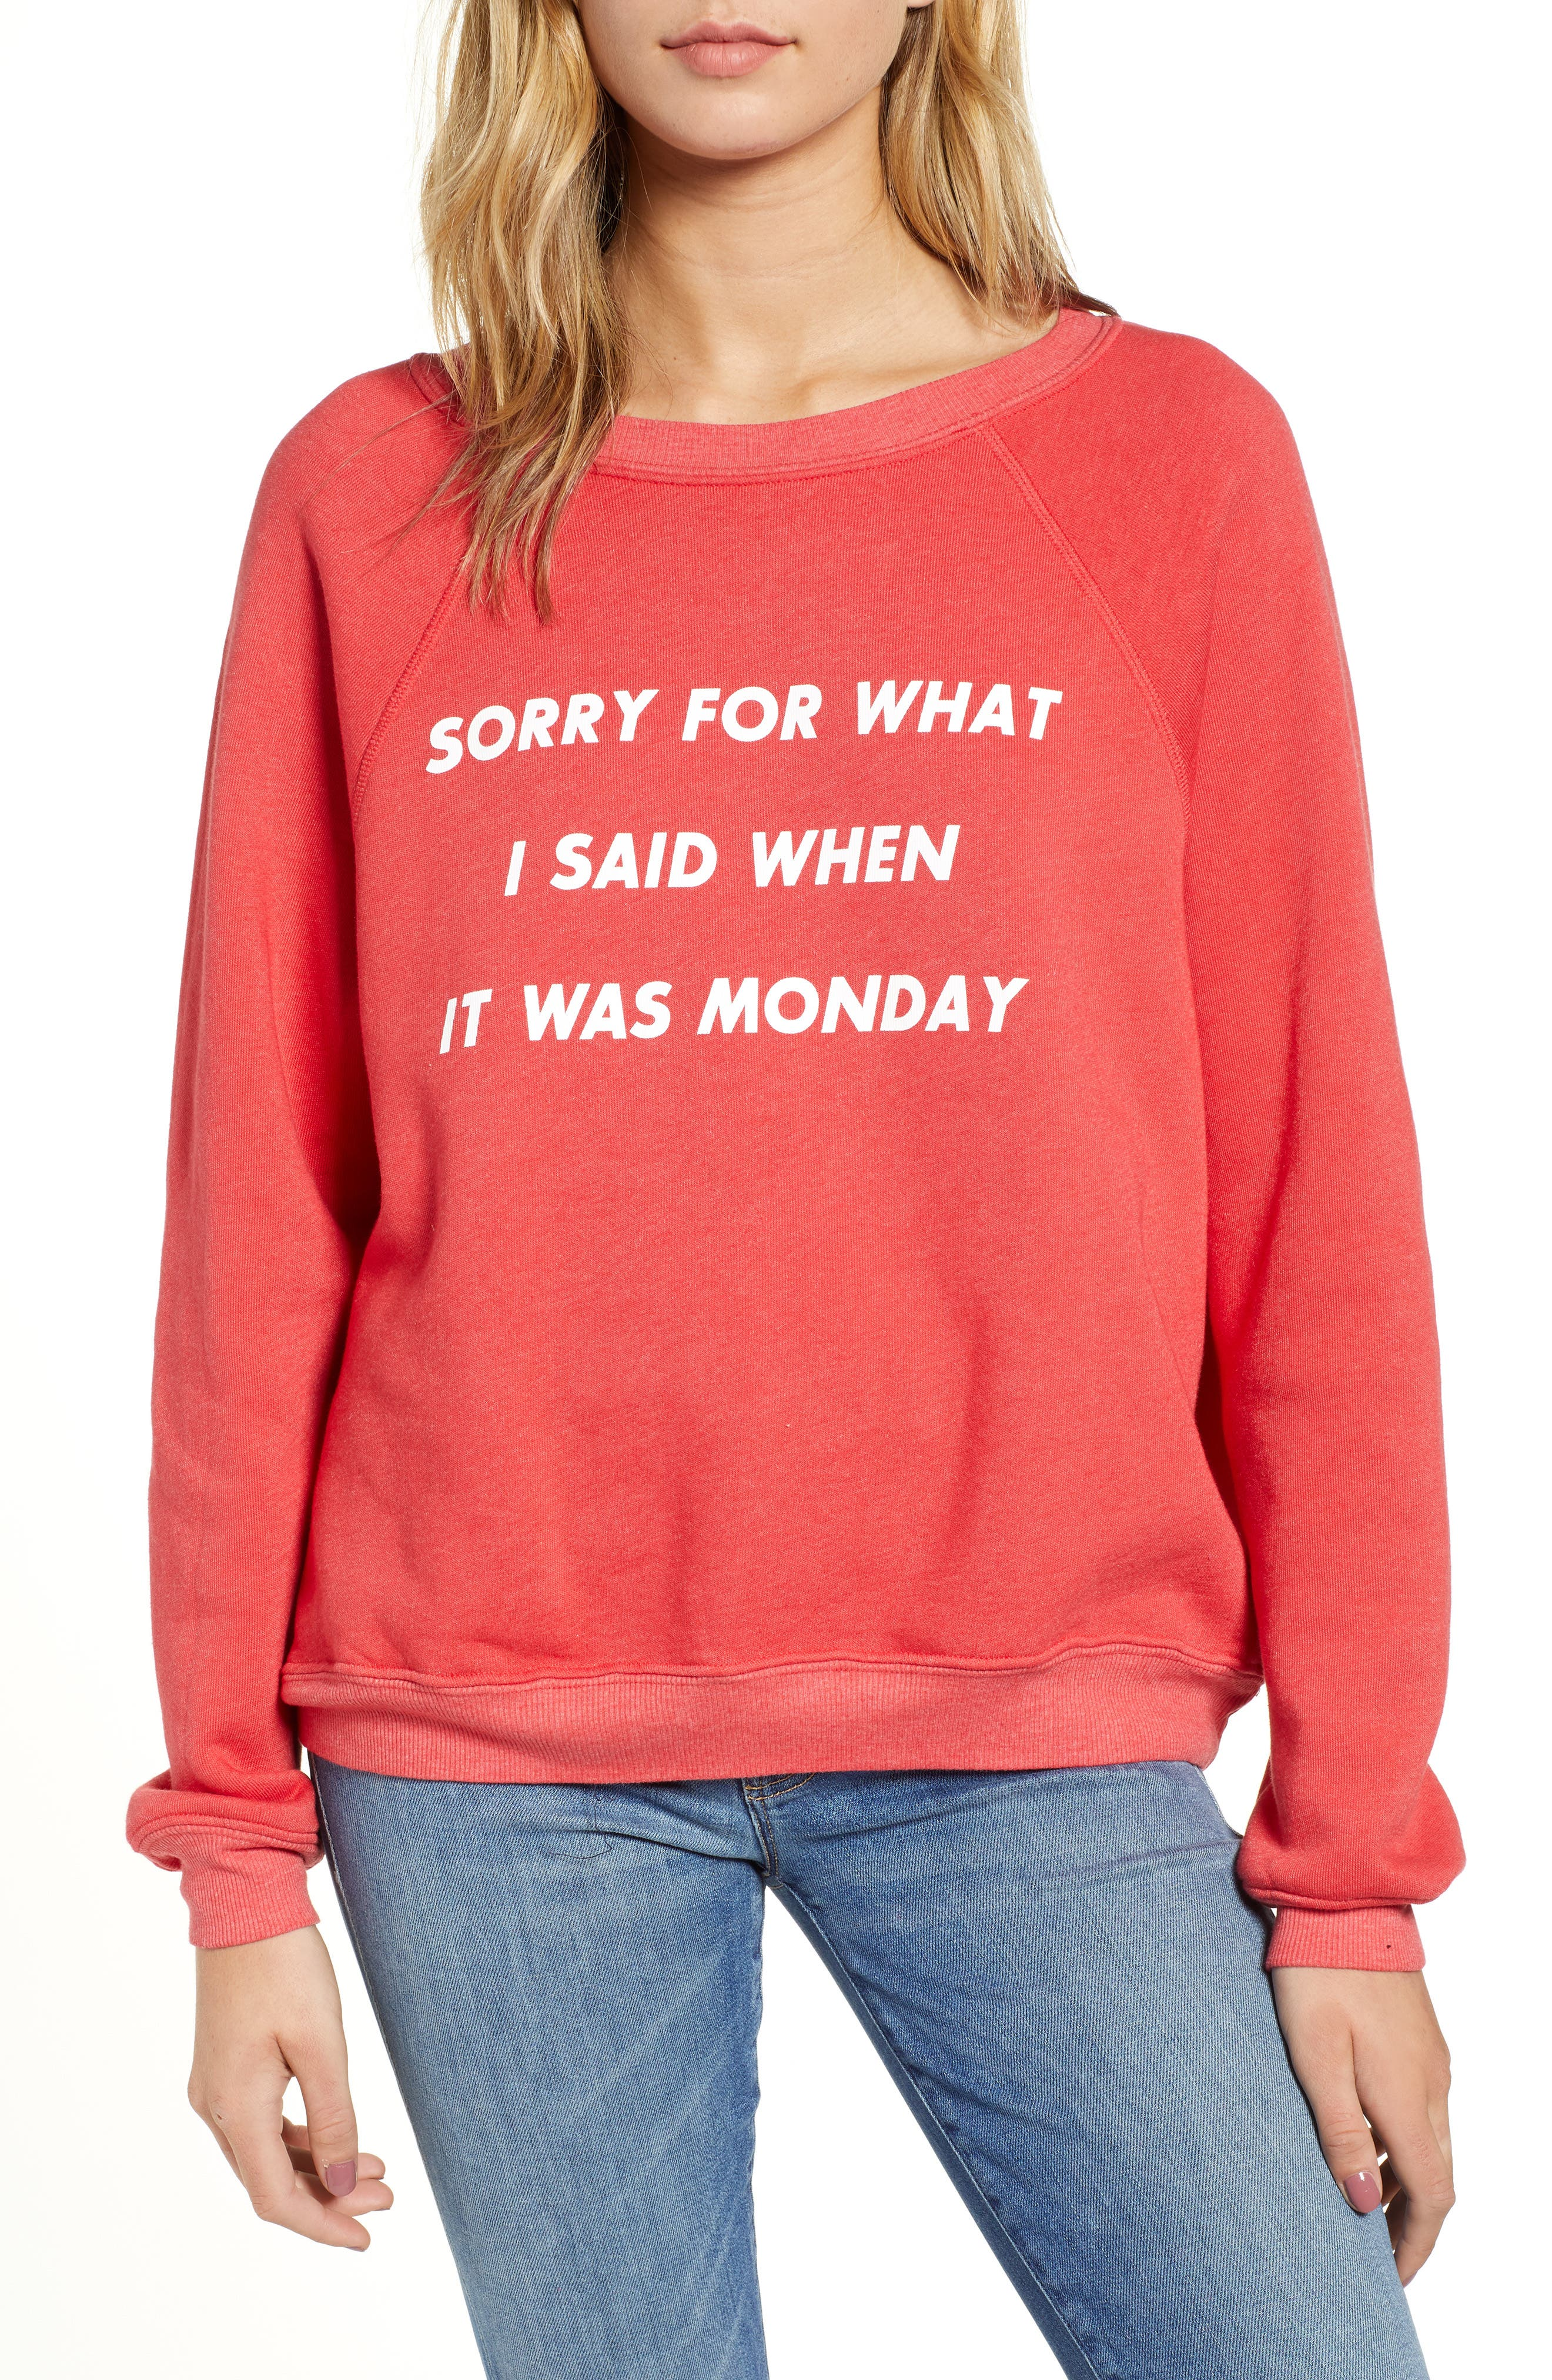 Monday Sommer Sweatshirt,                             Main thumbnail 1, color,                             SCARLET